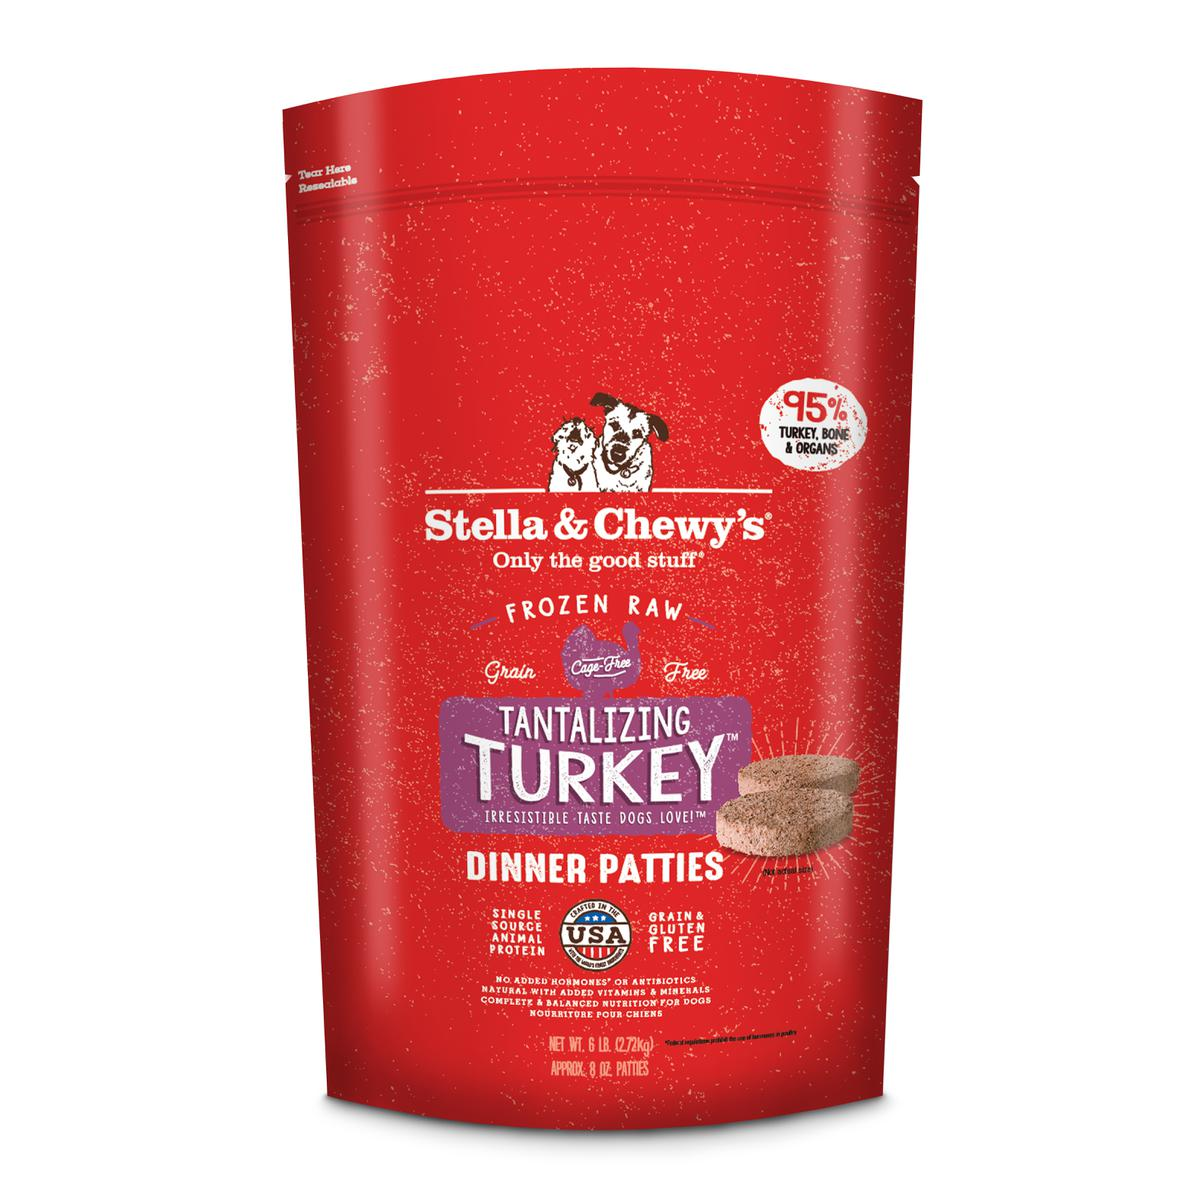 Stella & Chewy's Tantalizing Turkey Dinner Patties Raw Frozen Dog Food, 6-lb